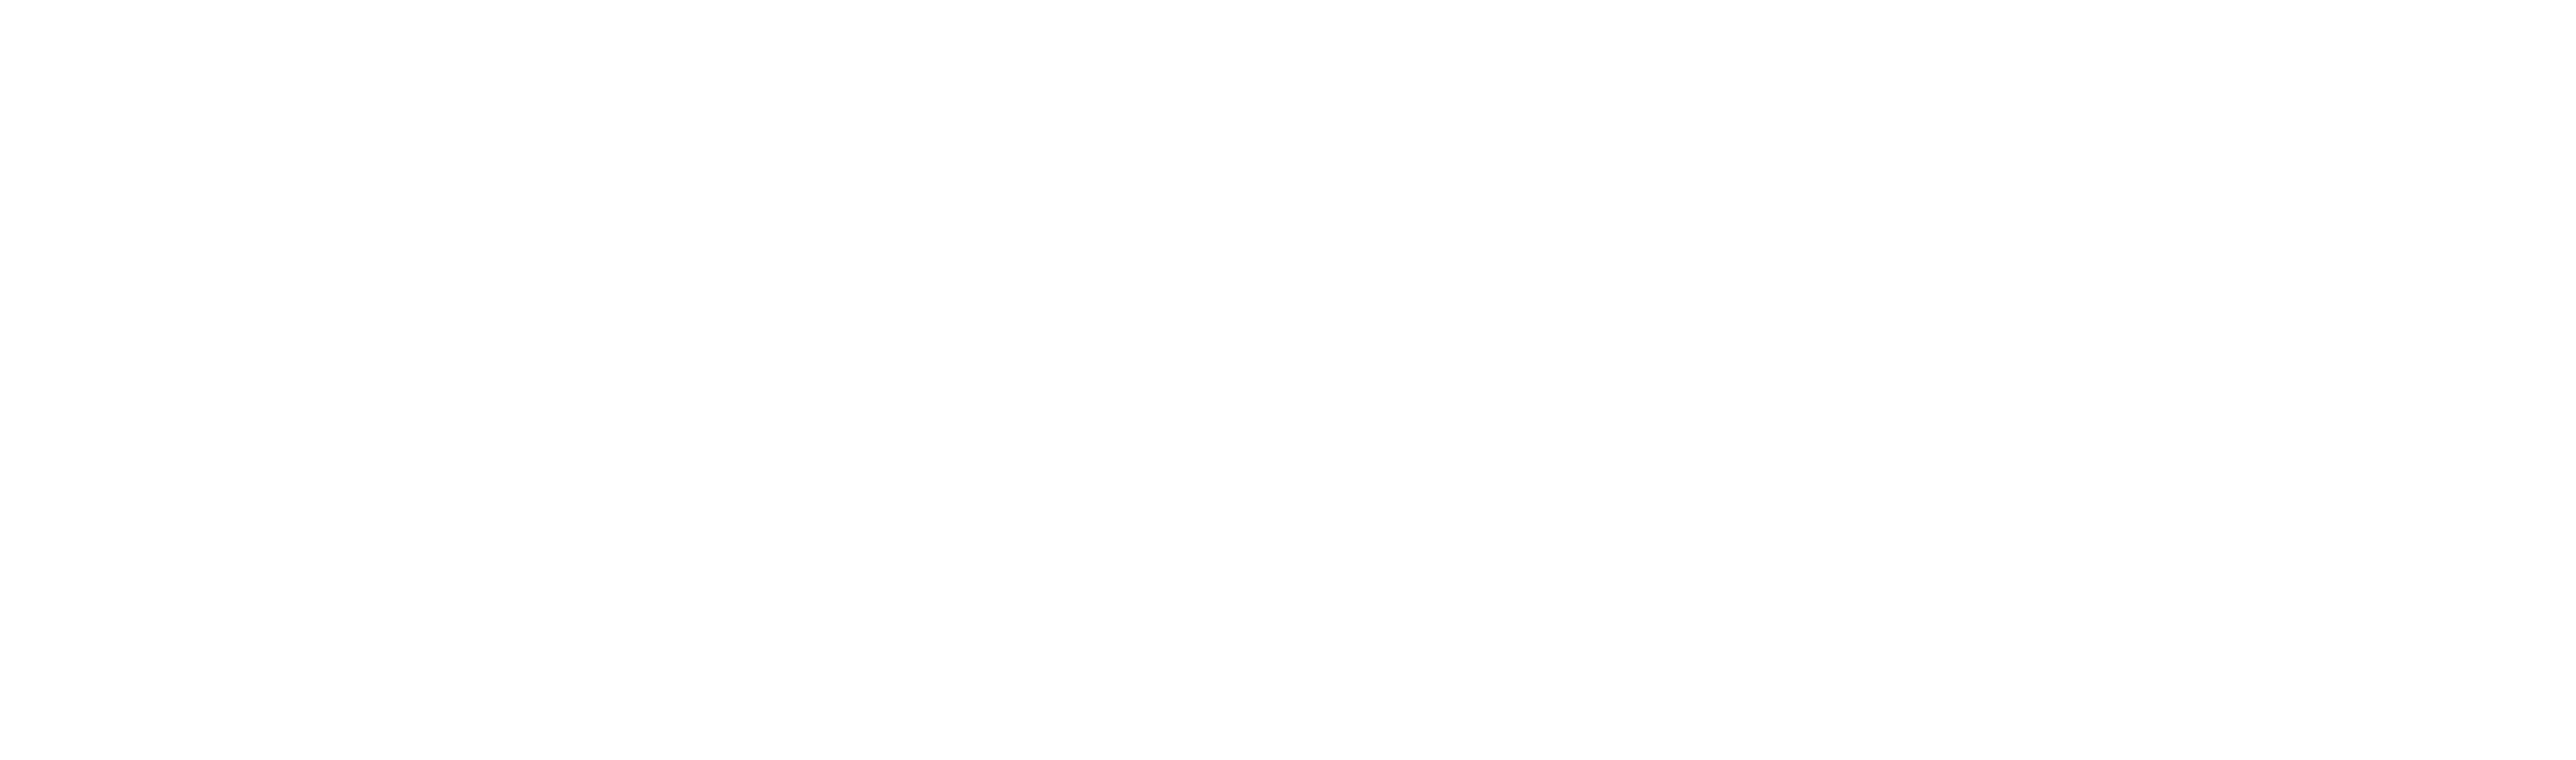 water trail assessment